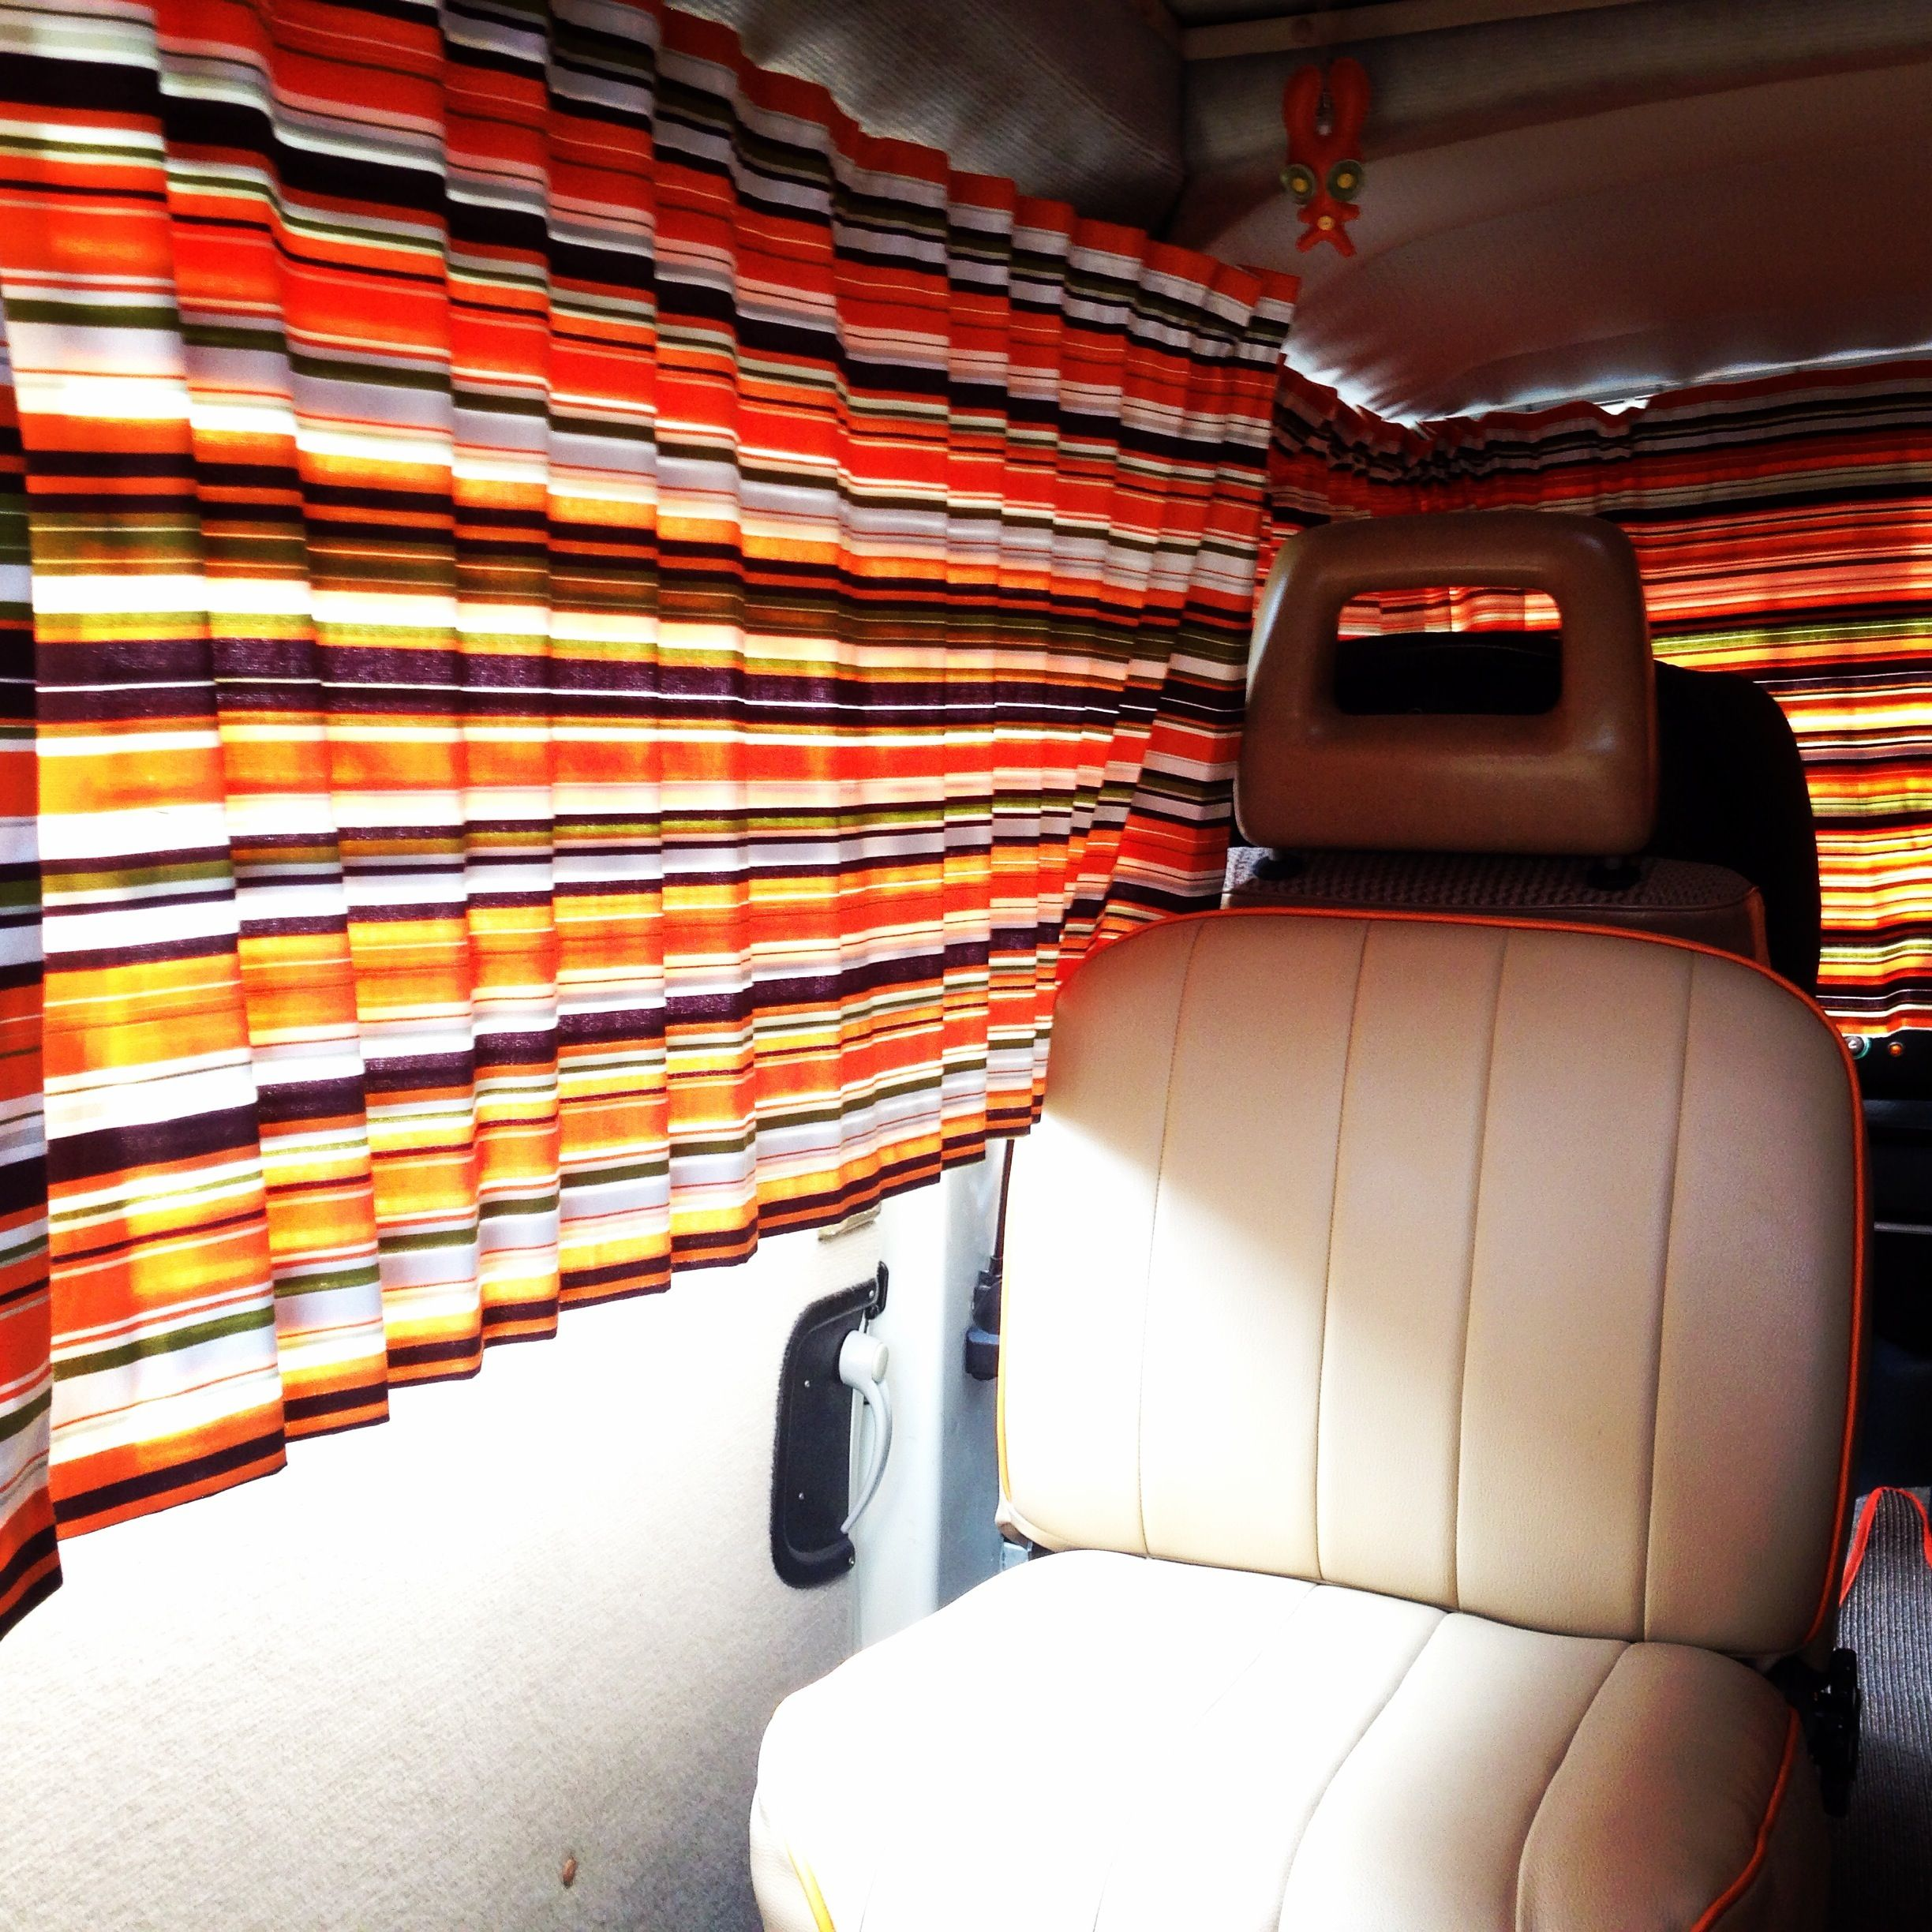 Retro camper curtains - Vw Campervan Curtains Orange And Brown Striped Fabric Terry S Fabric Right Lines In Caramel